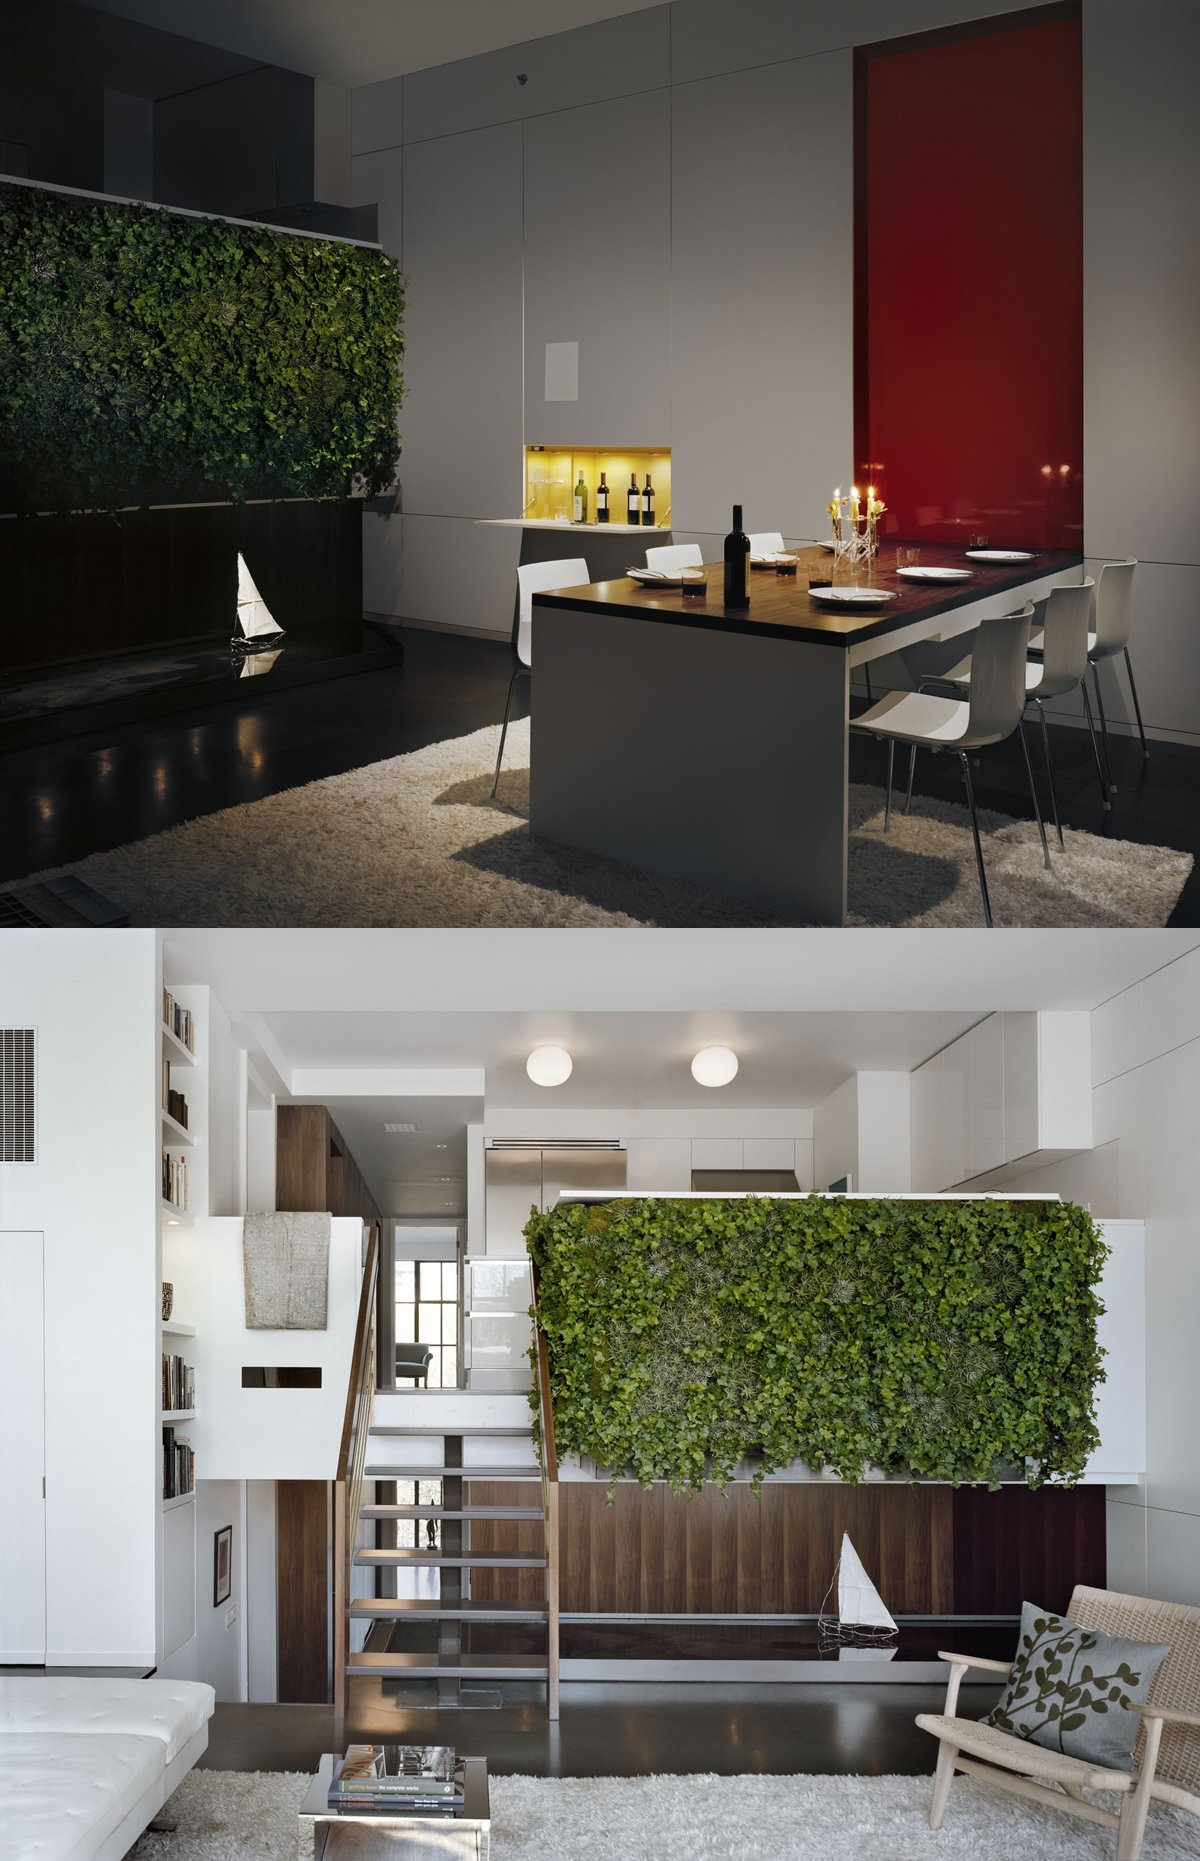 Pulltab Design living green wall with water feature shallow pond for irrigation  Interior